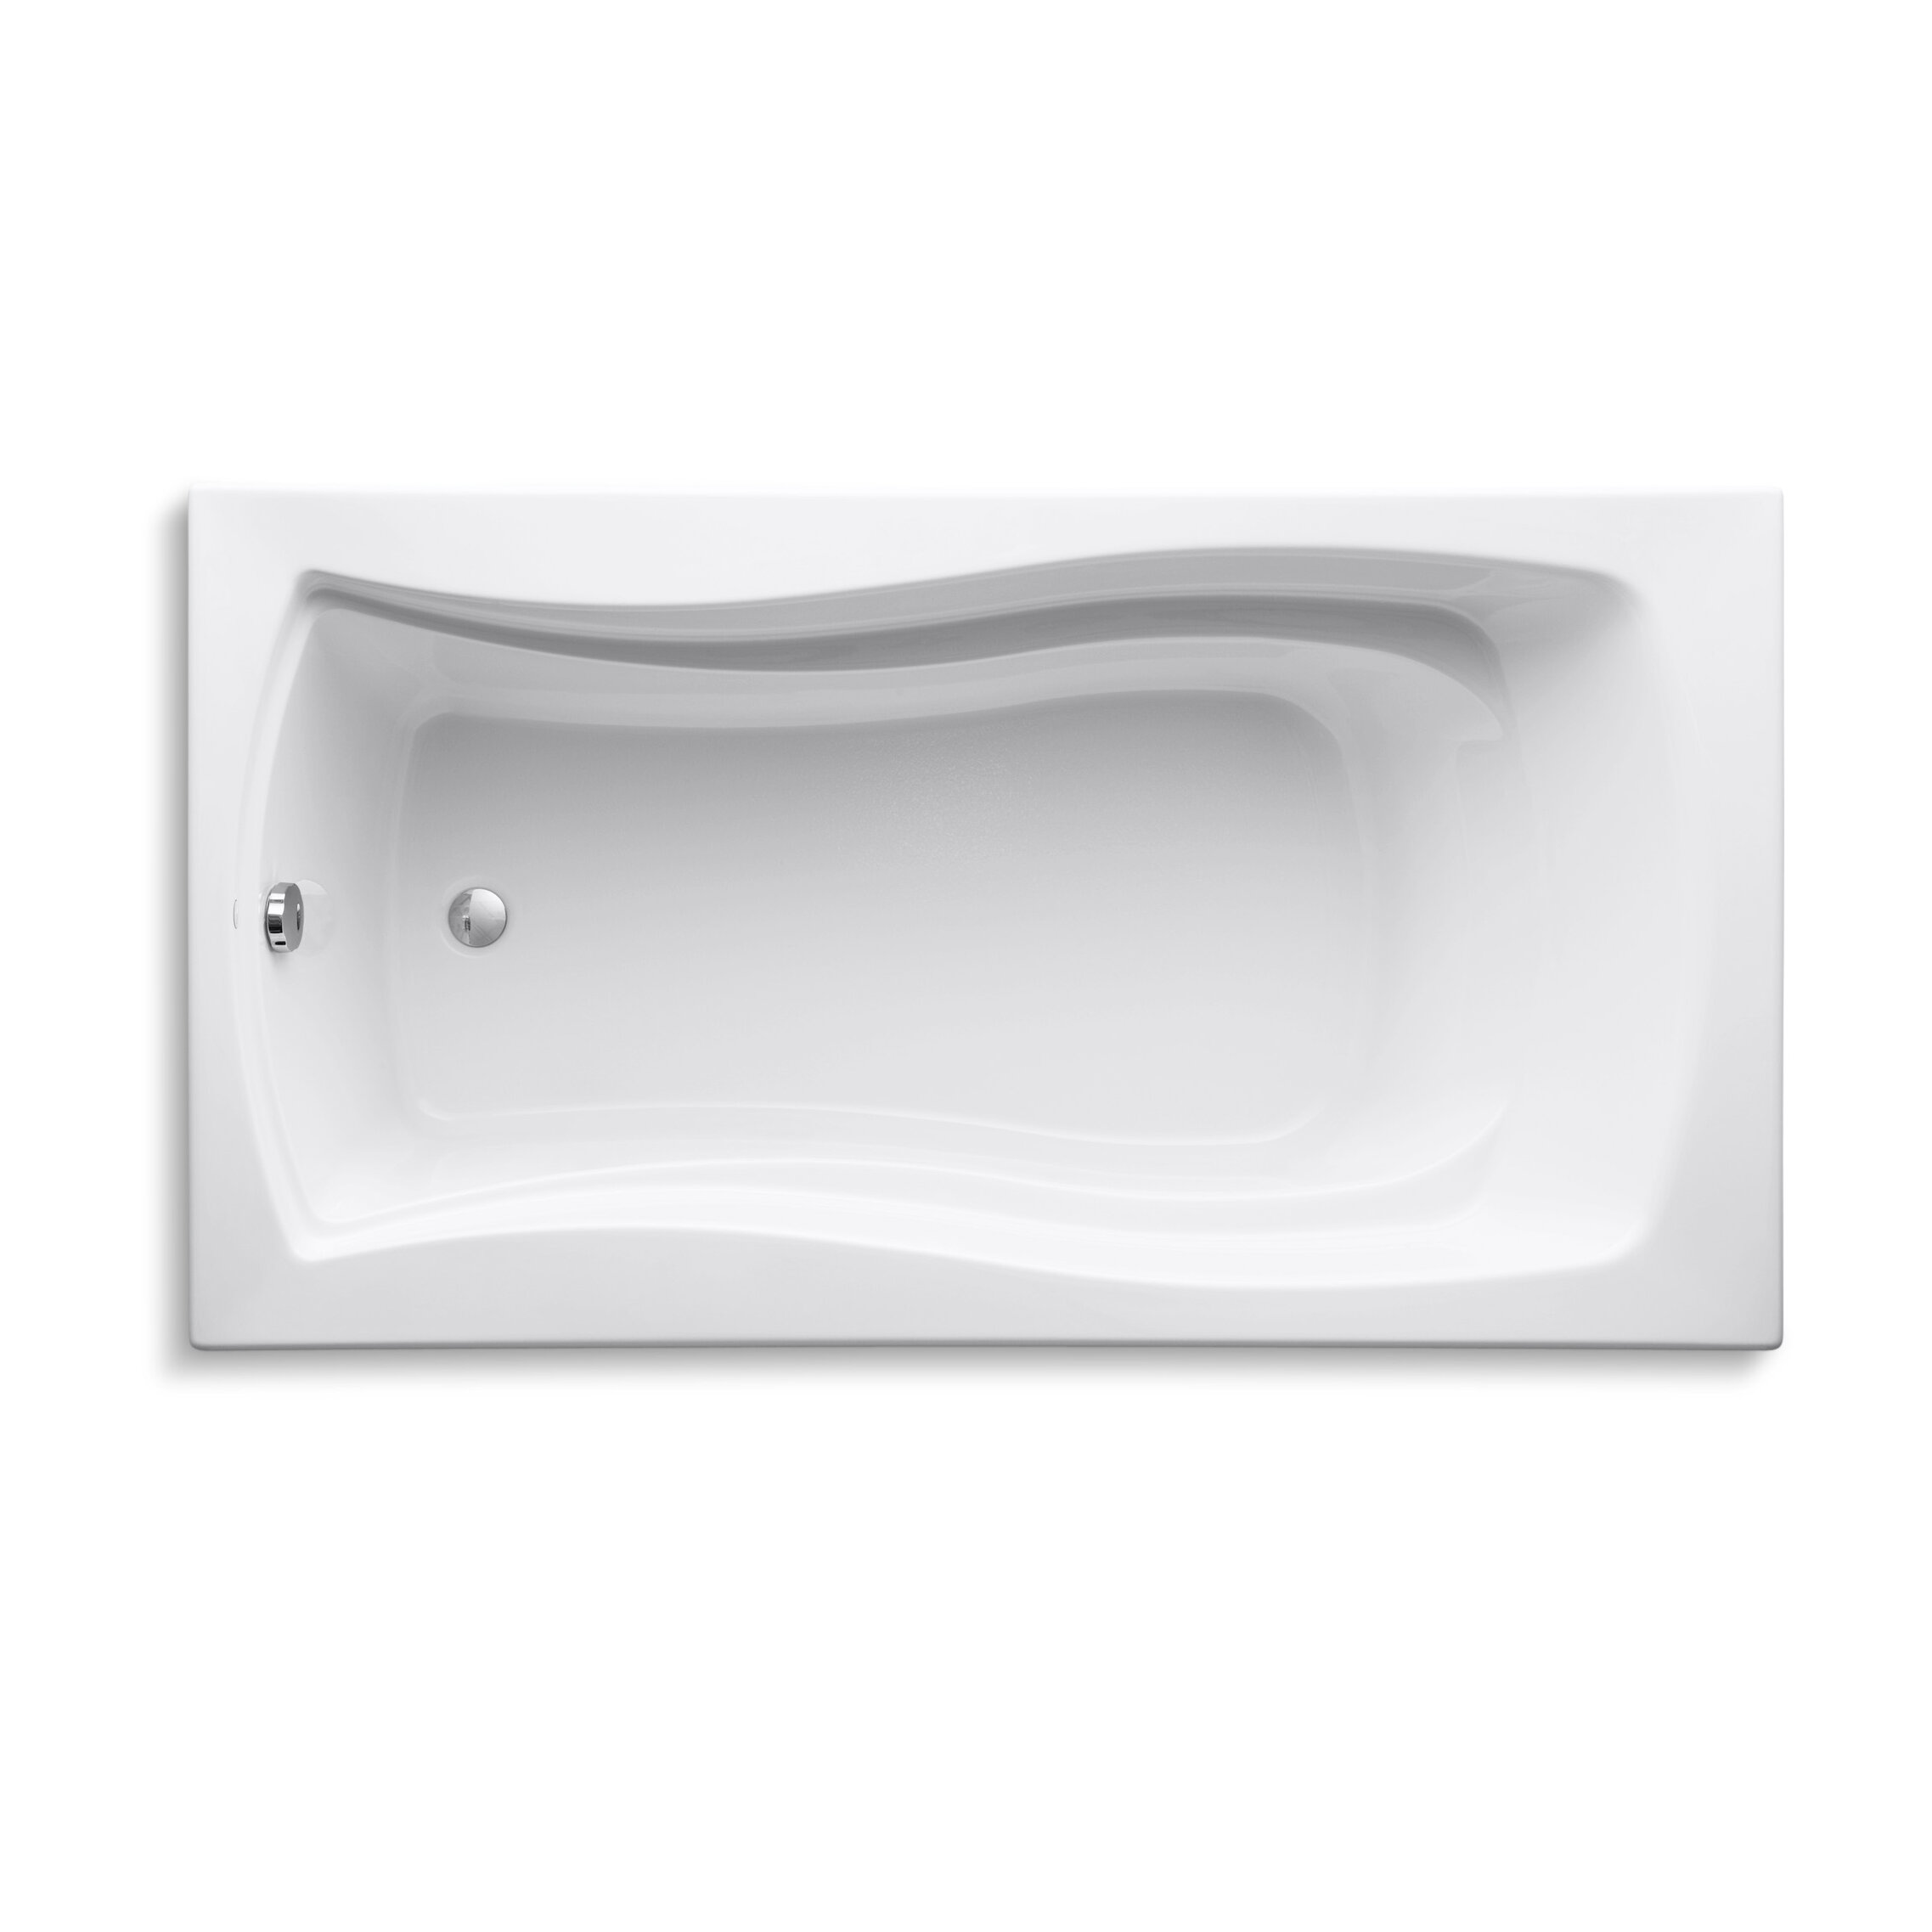 splendid bathtub designs makes melody awesome collection reviews emily bathtubs soaking polished wyndham who design wcbto compact x